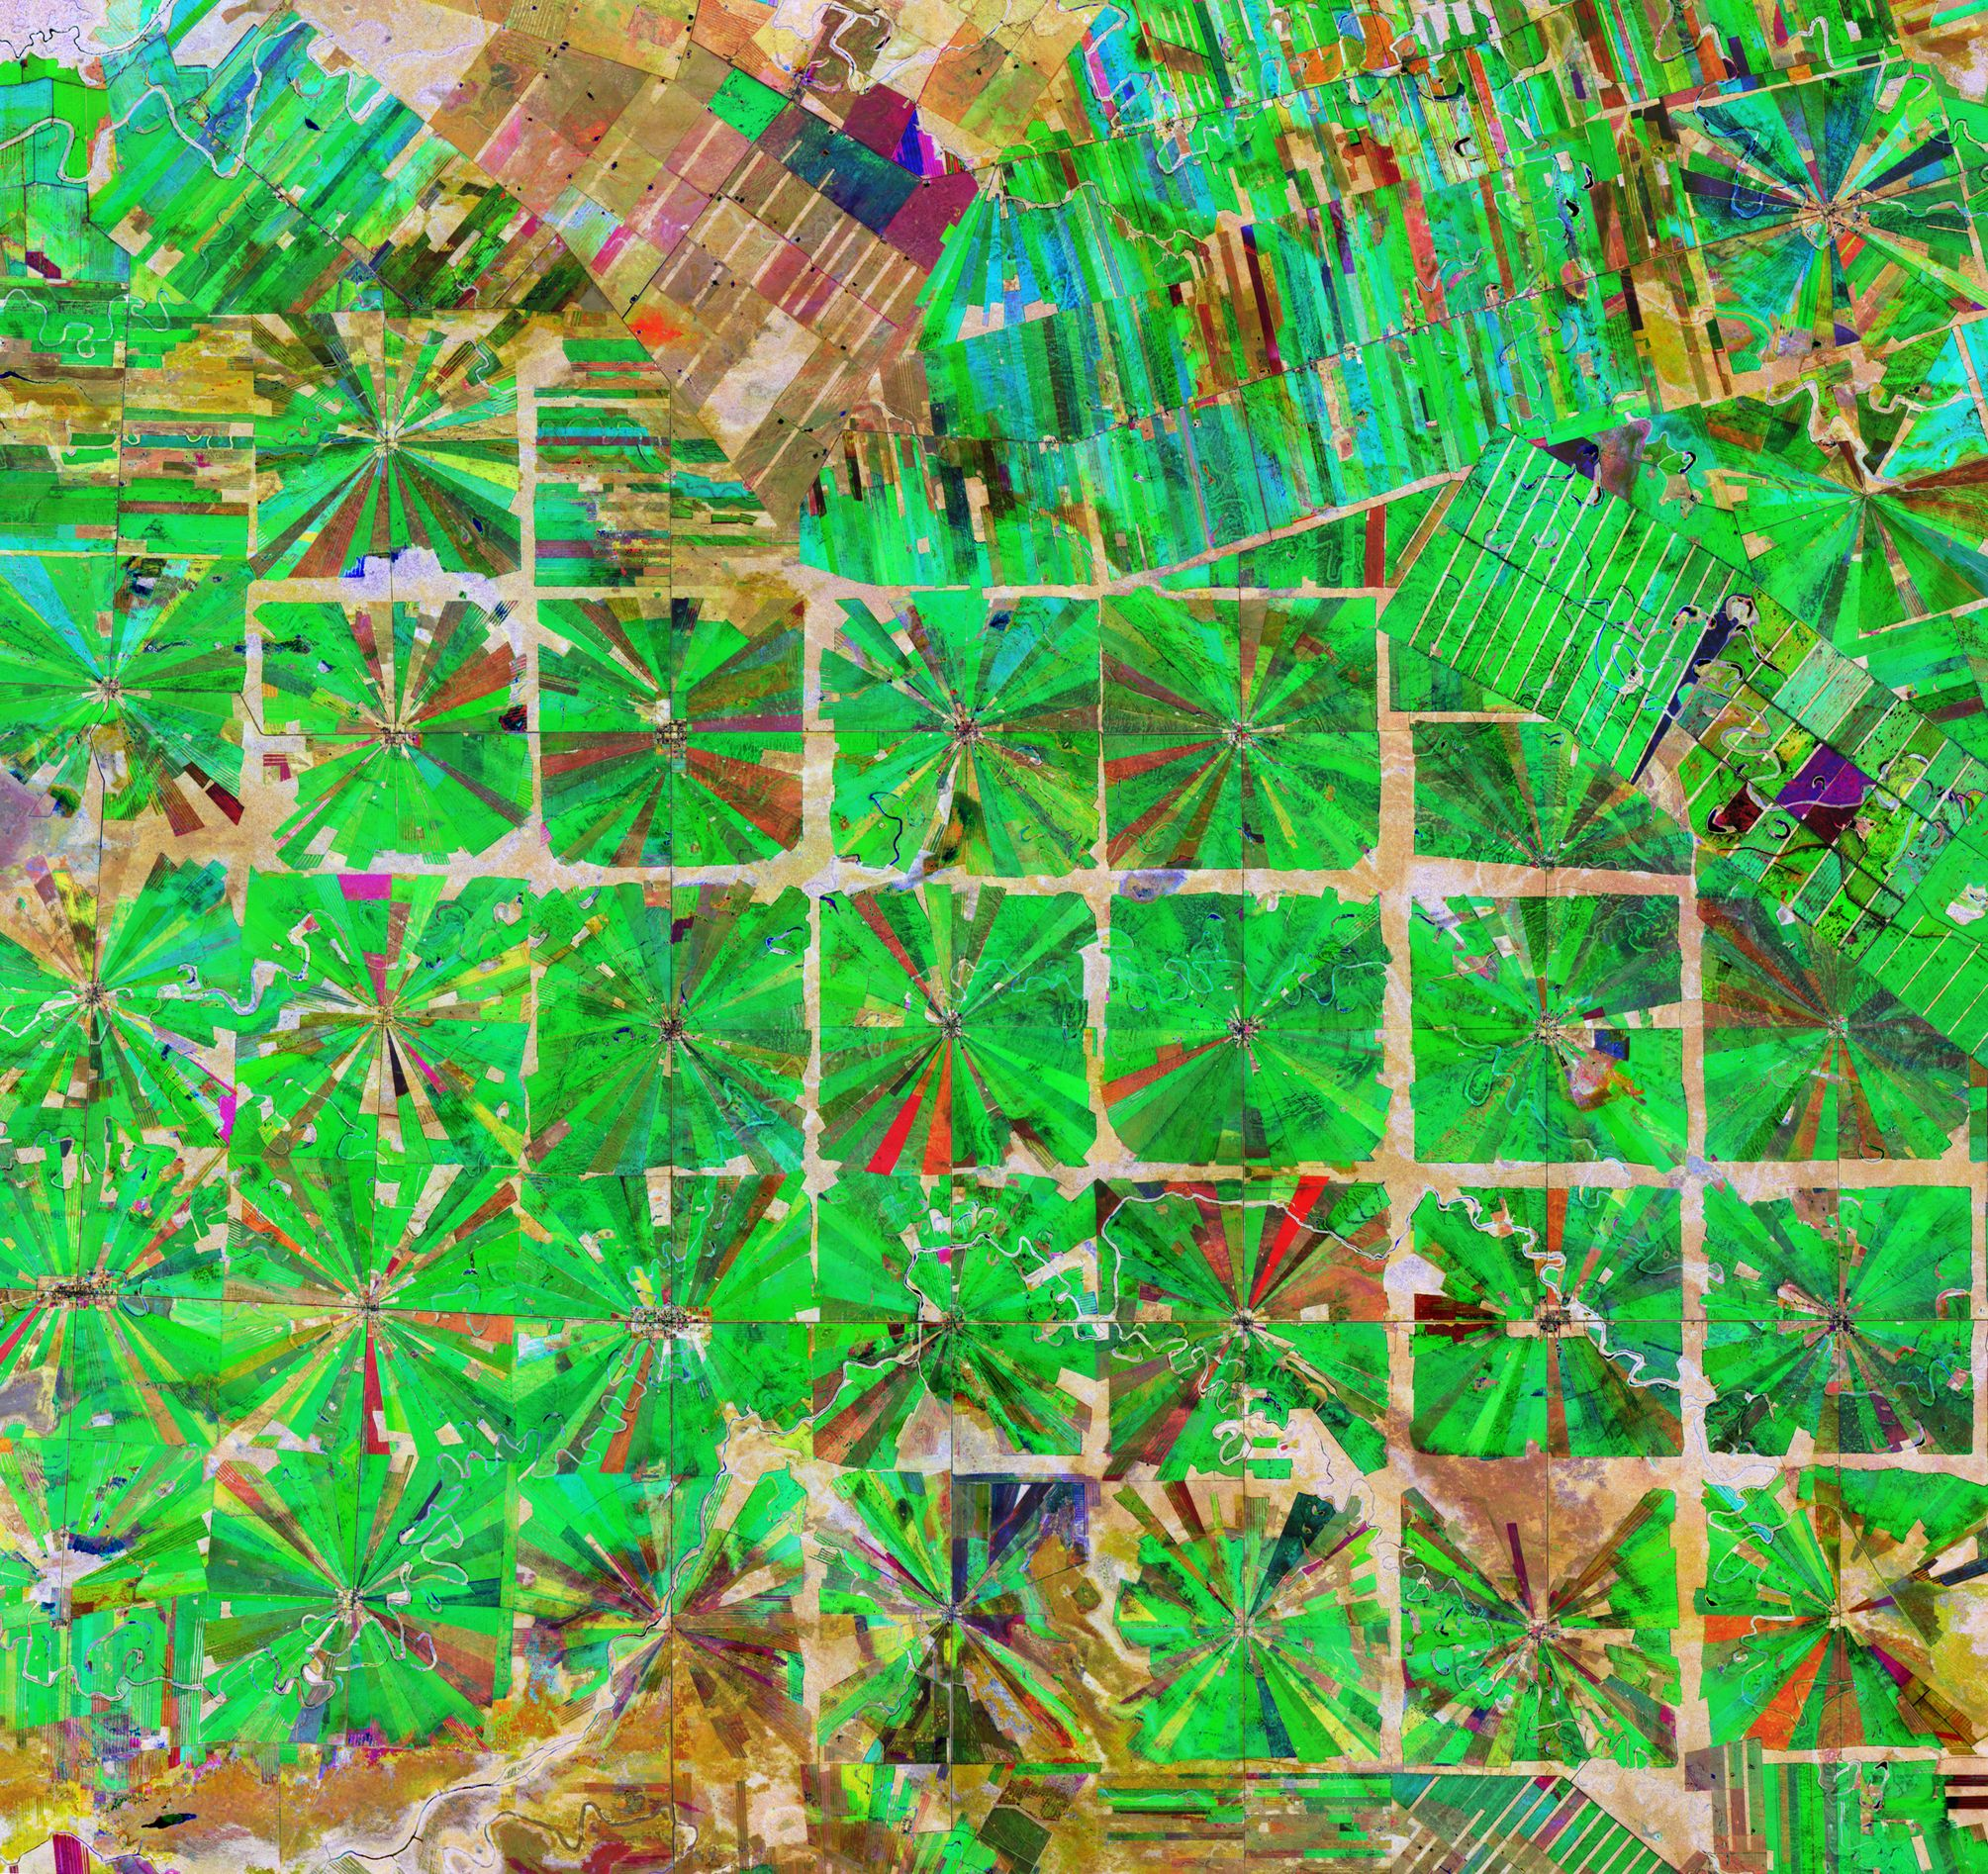 Satellite imagery of rapid deforestation in Bolivia. Source: modified Copernicus Sentinel data (2019), processed by ESA, CC BY-SA 3.0 IGO. Using spatial finance for sustainable development